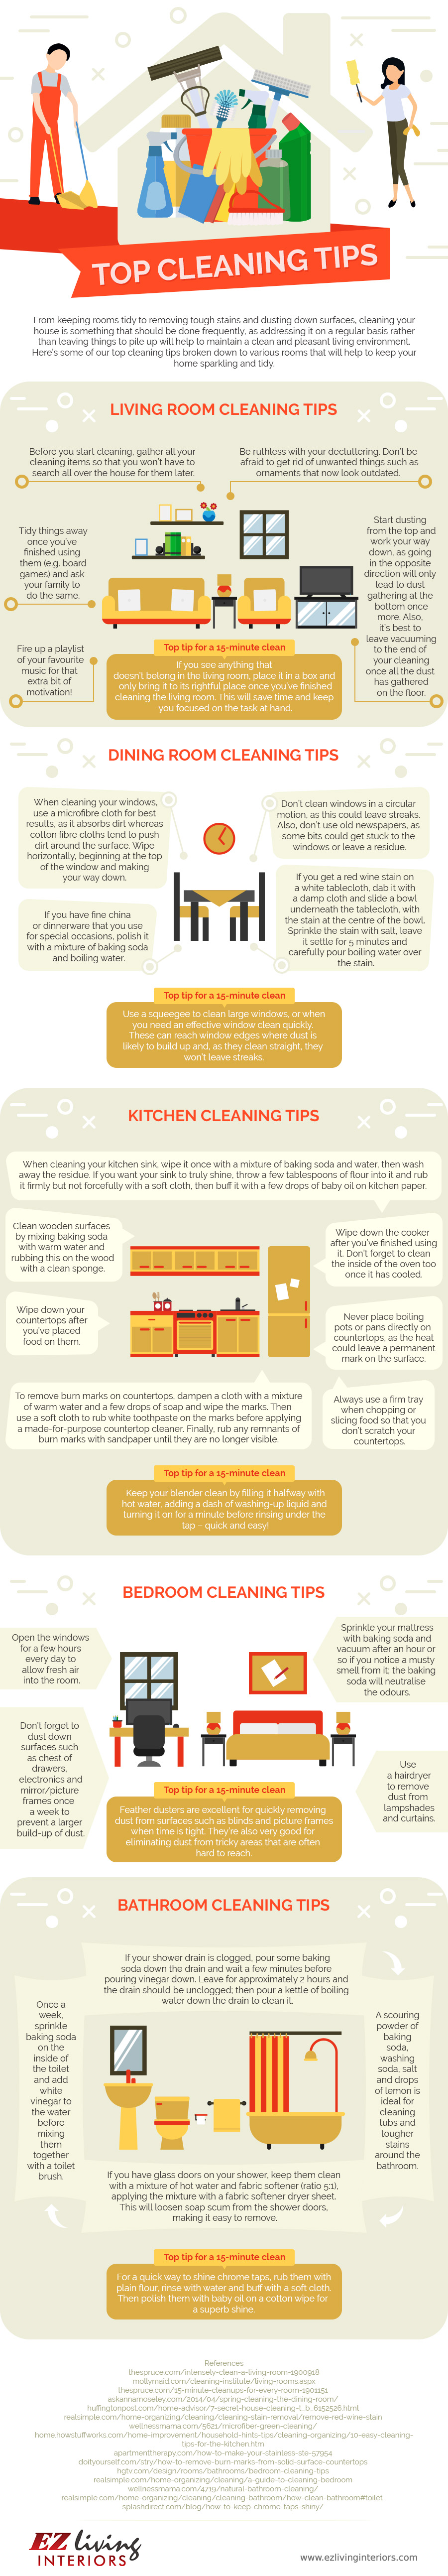 Cleaning-Tips-Vissual-Asset-IE.jpg